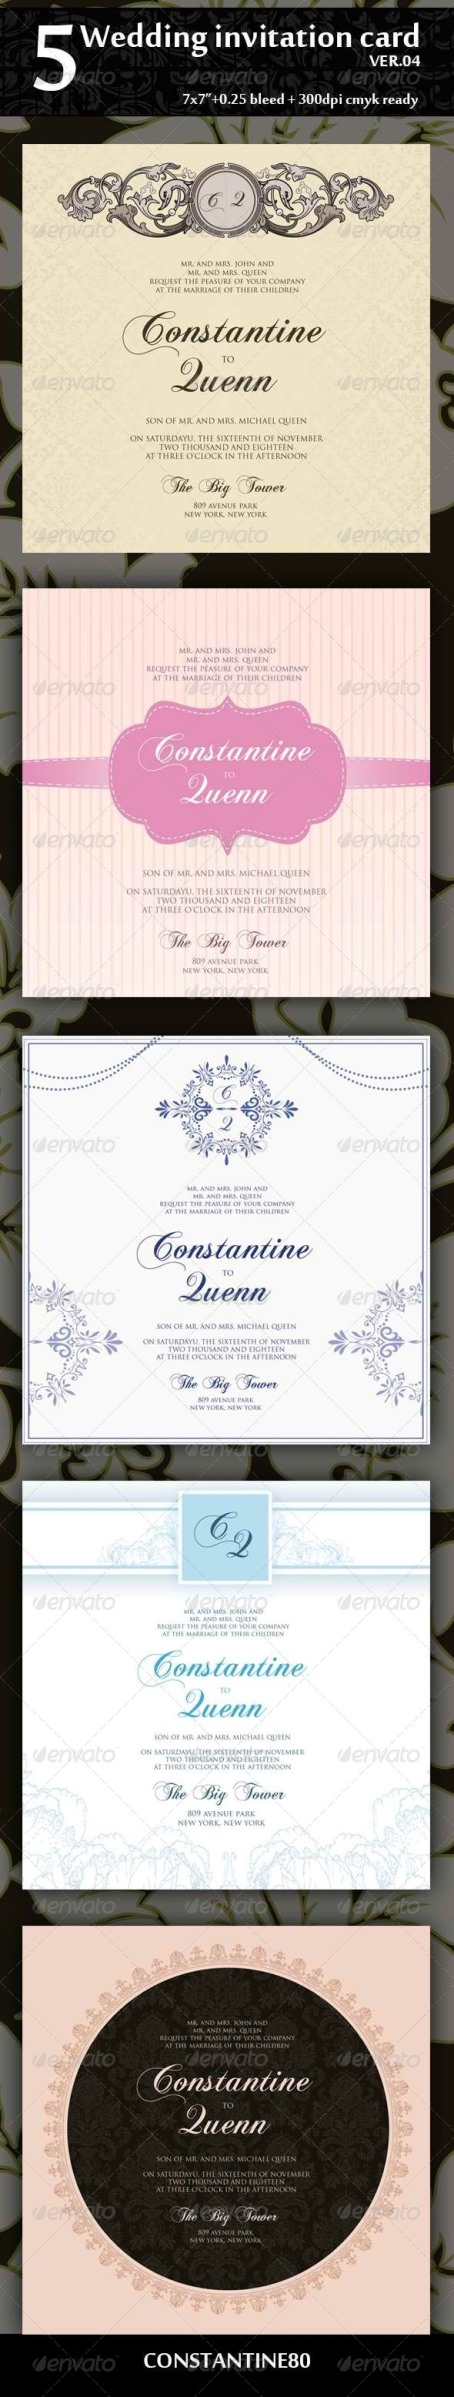 Desain-Undangan-Nikah-5-Wedding-Invitation-7×7-Ver-04